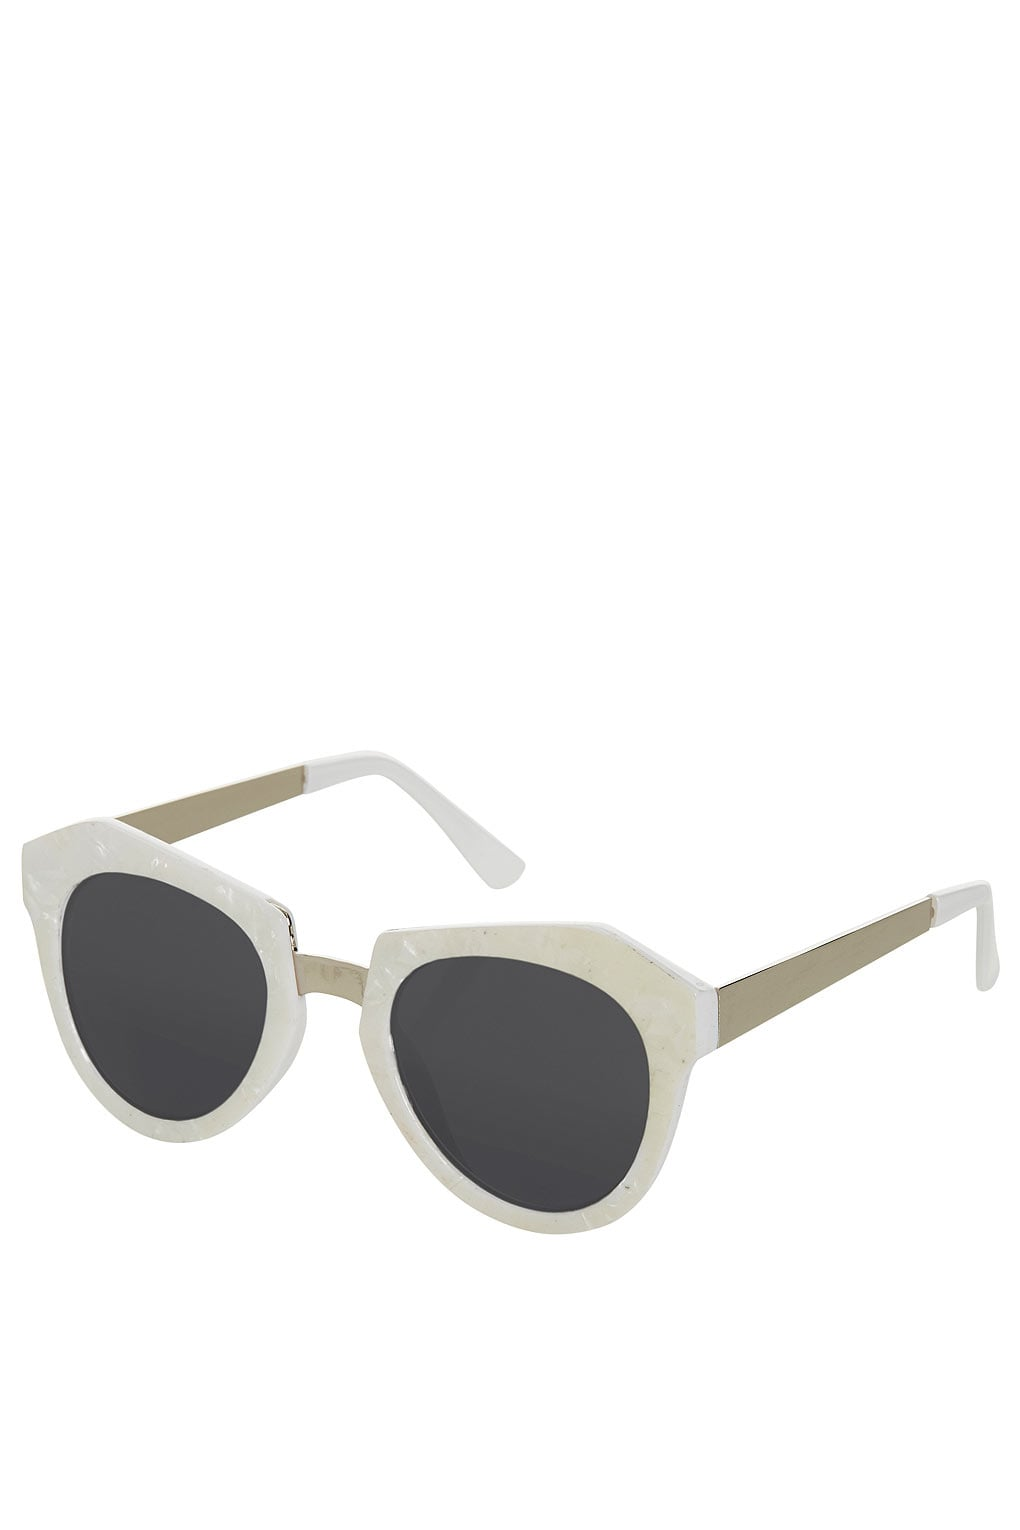 Sunglasses Under $50